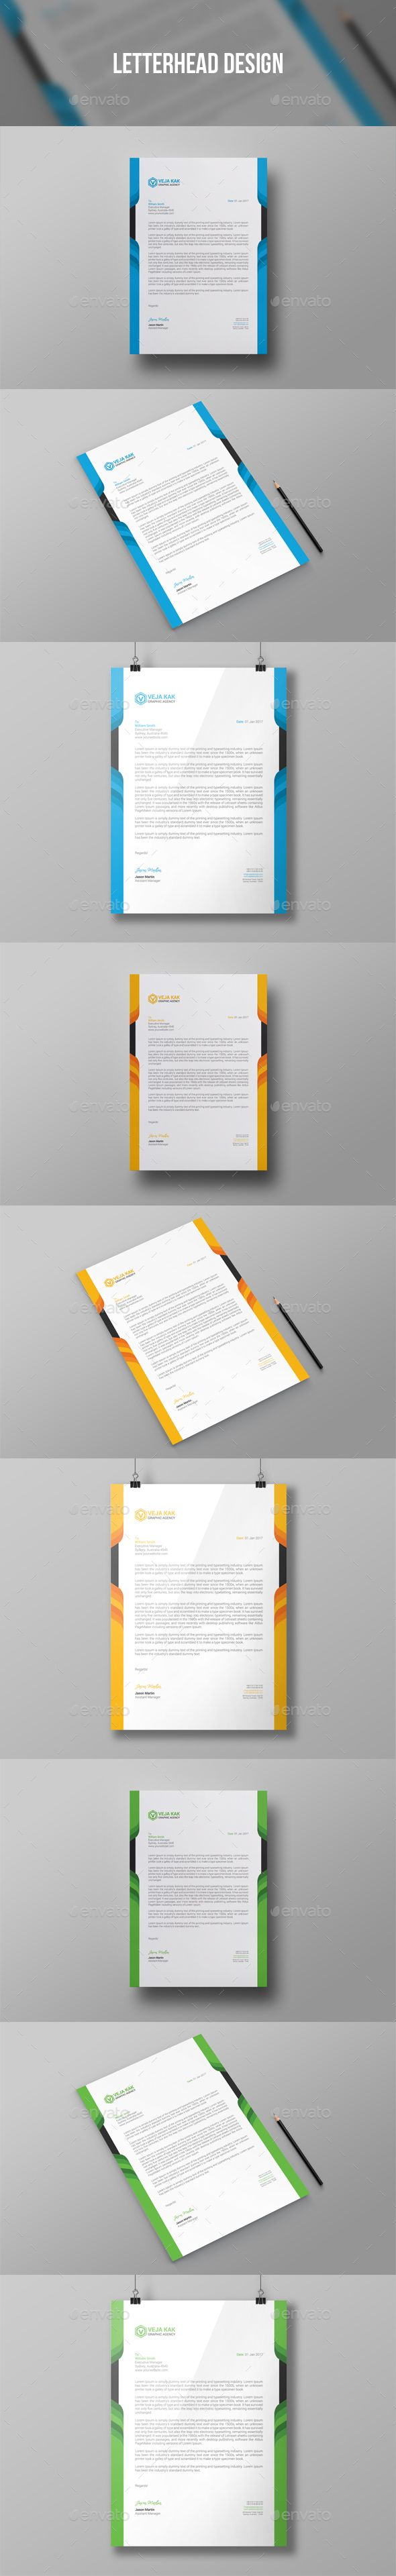 54 best letterheads images on pinterest letterhead stationery letterhead design spiritdancerdesigns Choice Image